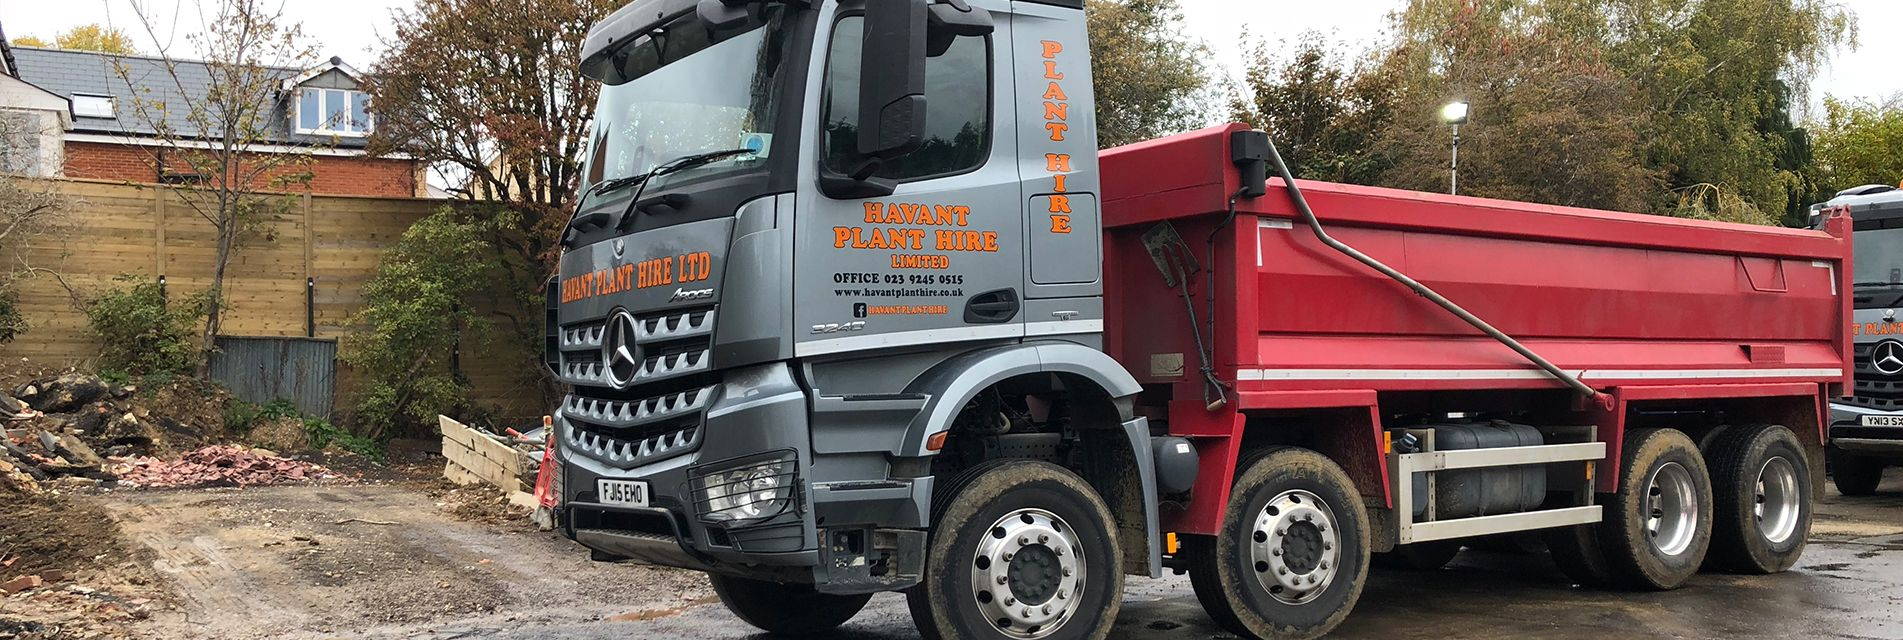 tipper hire in Hayling Island